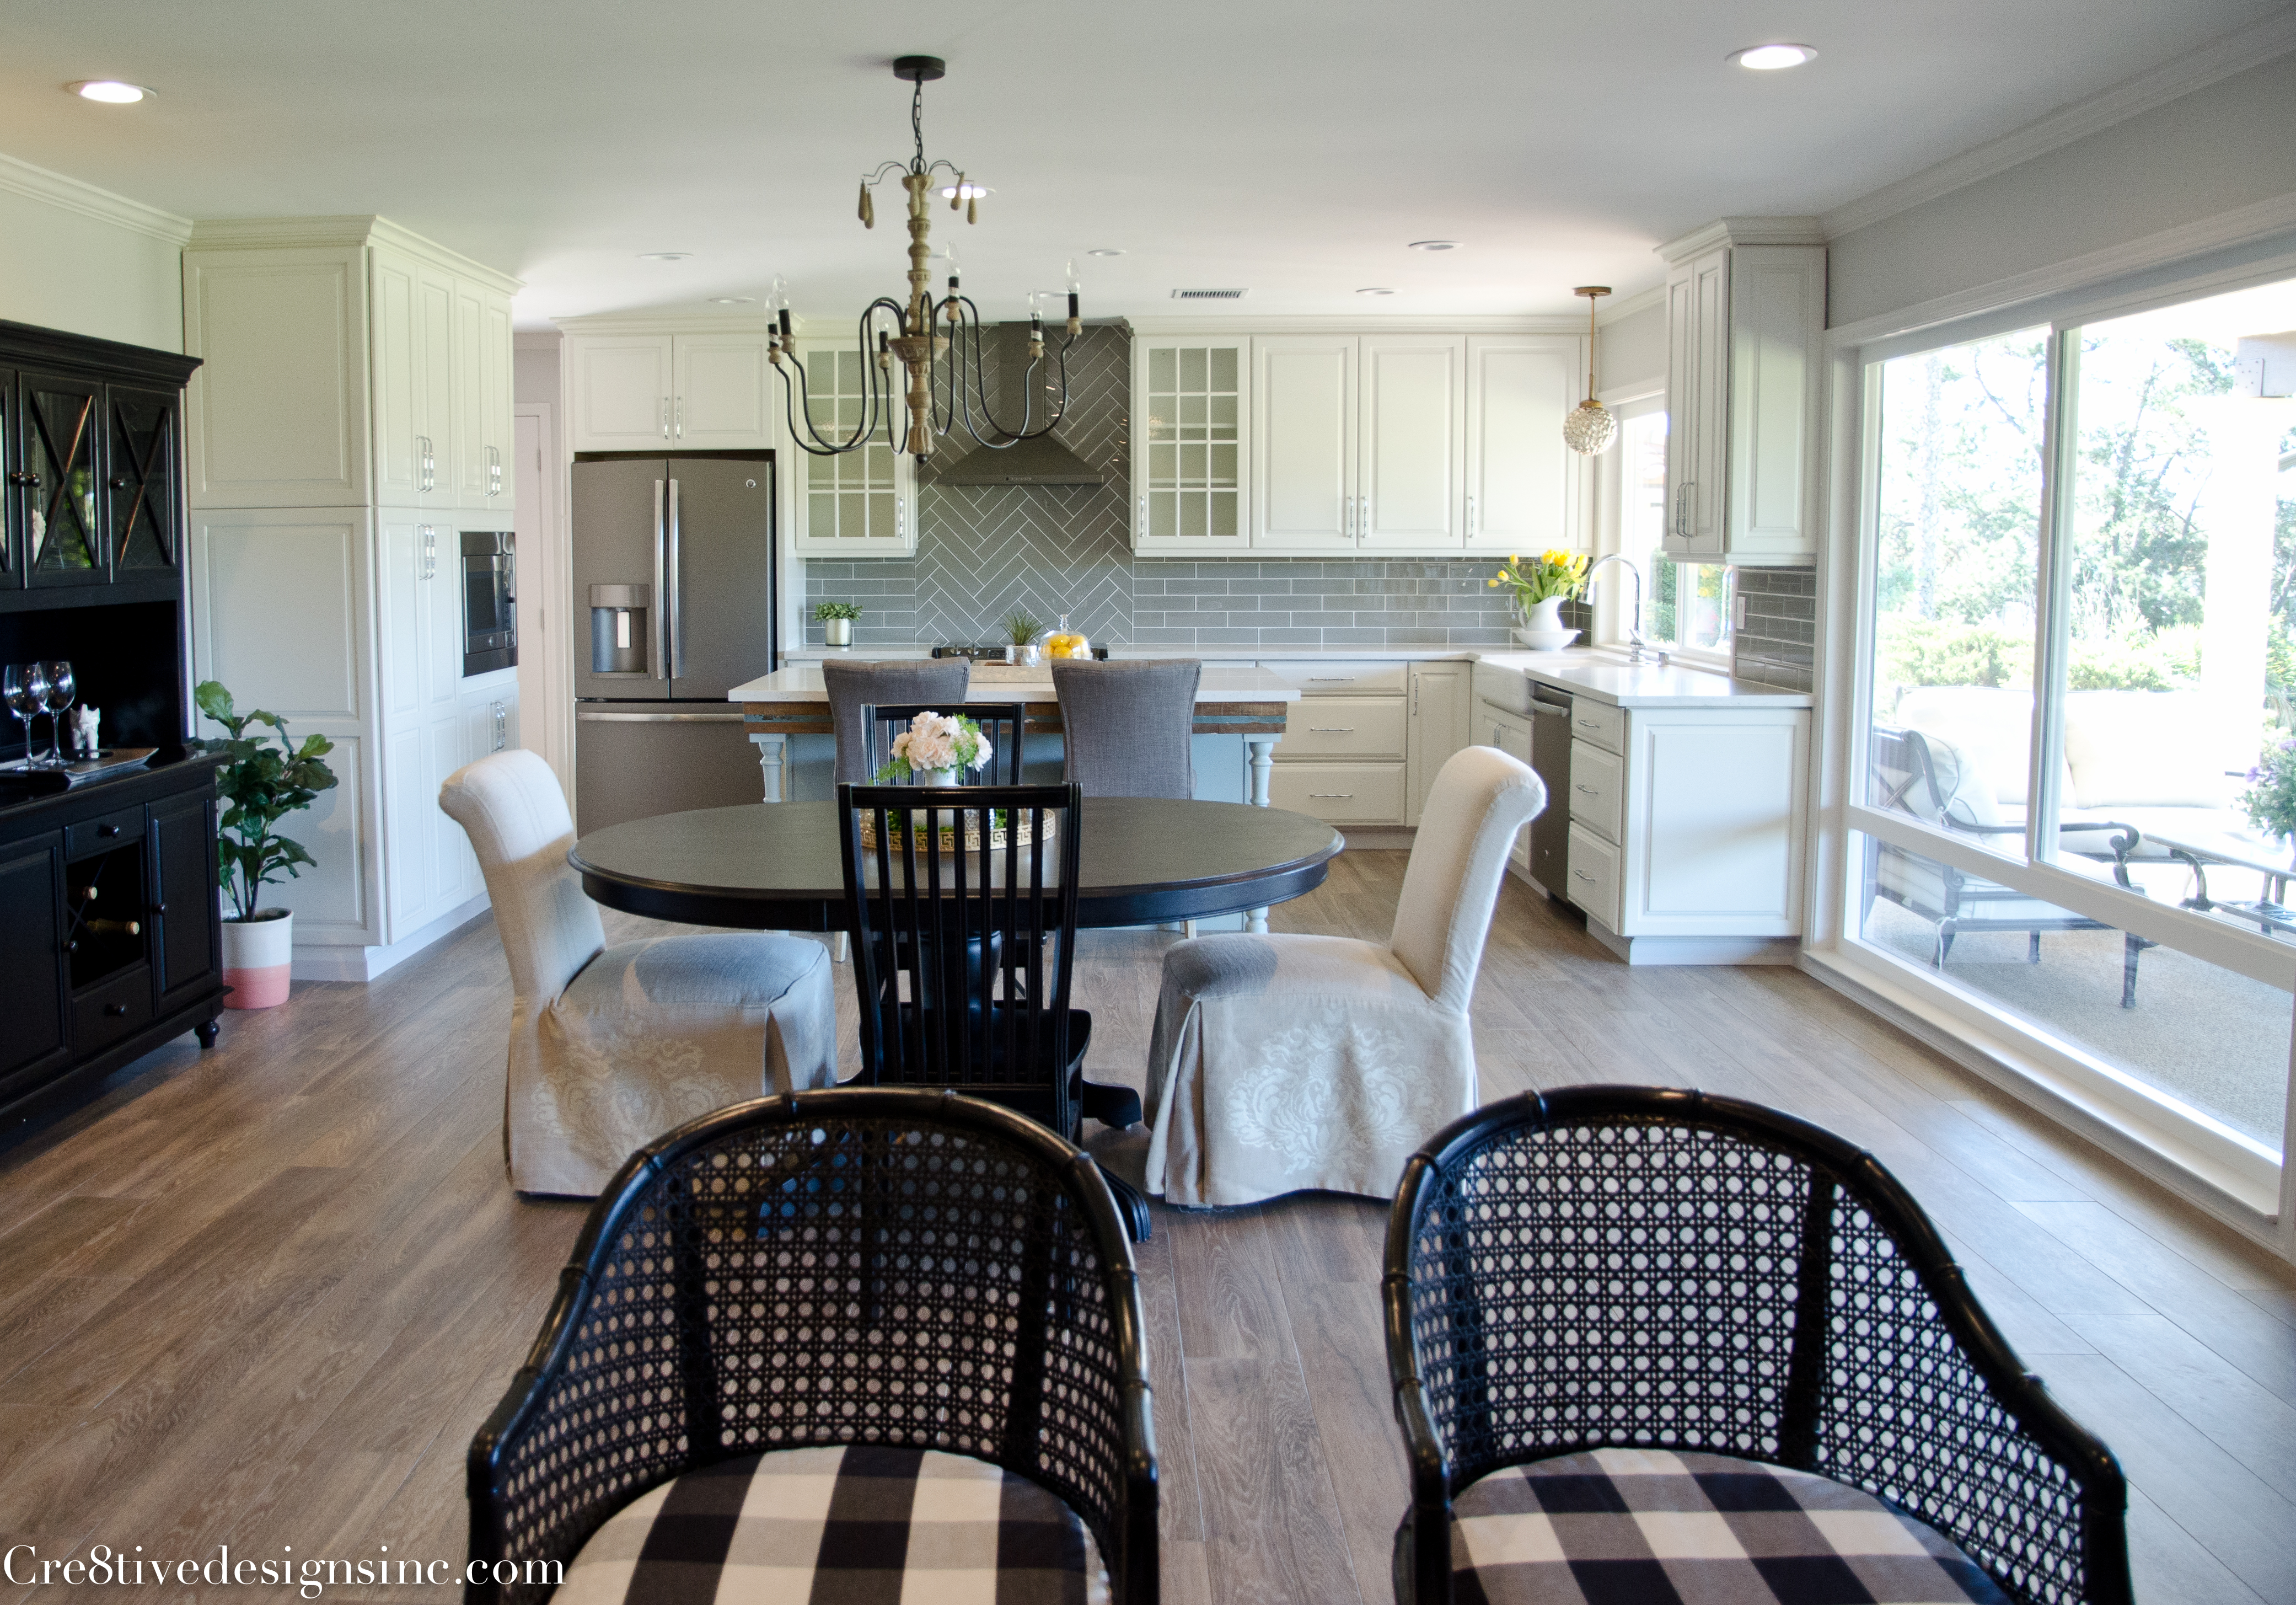 A 70's house remodel - Cre8tive Designs Inc